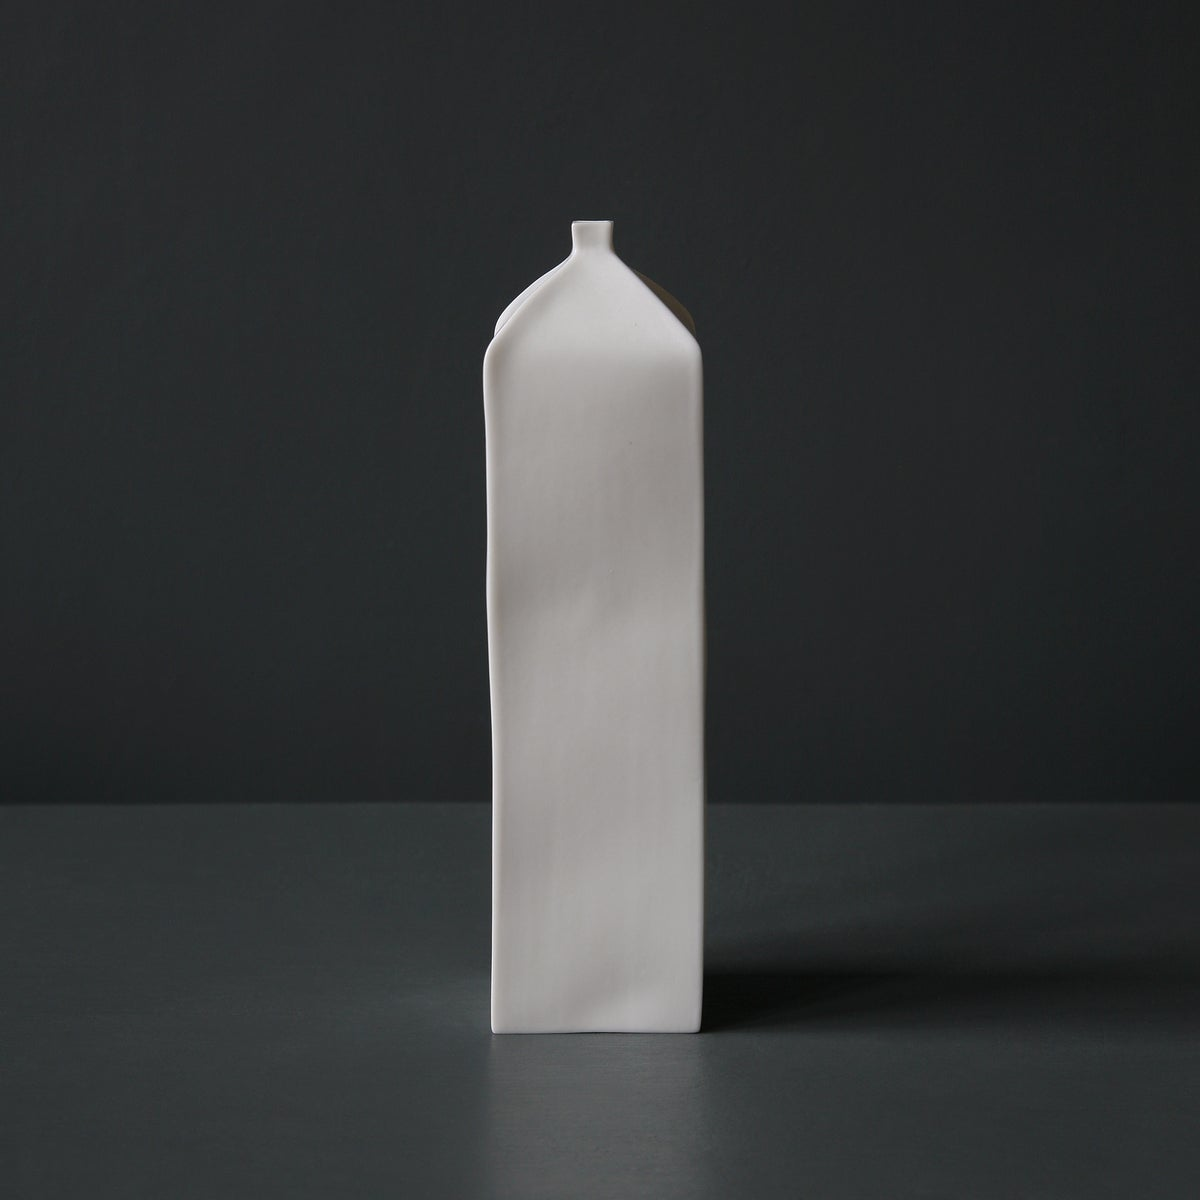 Image of Tall Rectangular Vessel by Justine Allison.